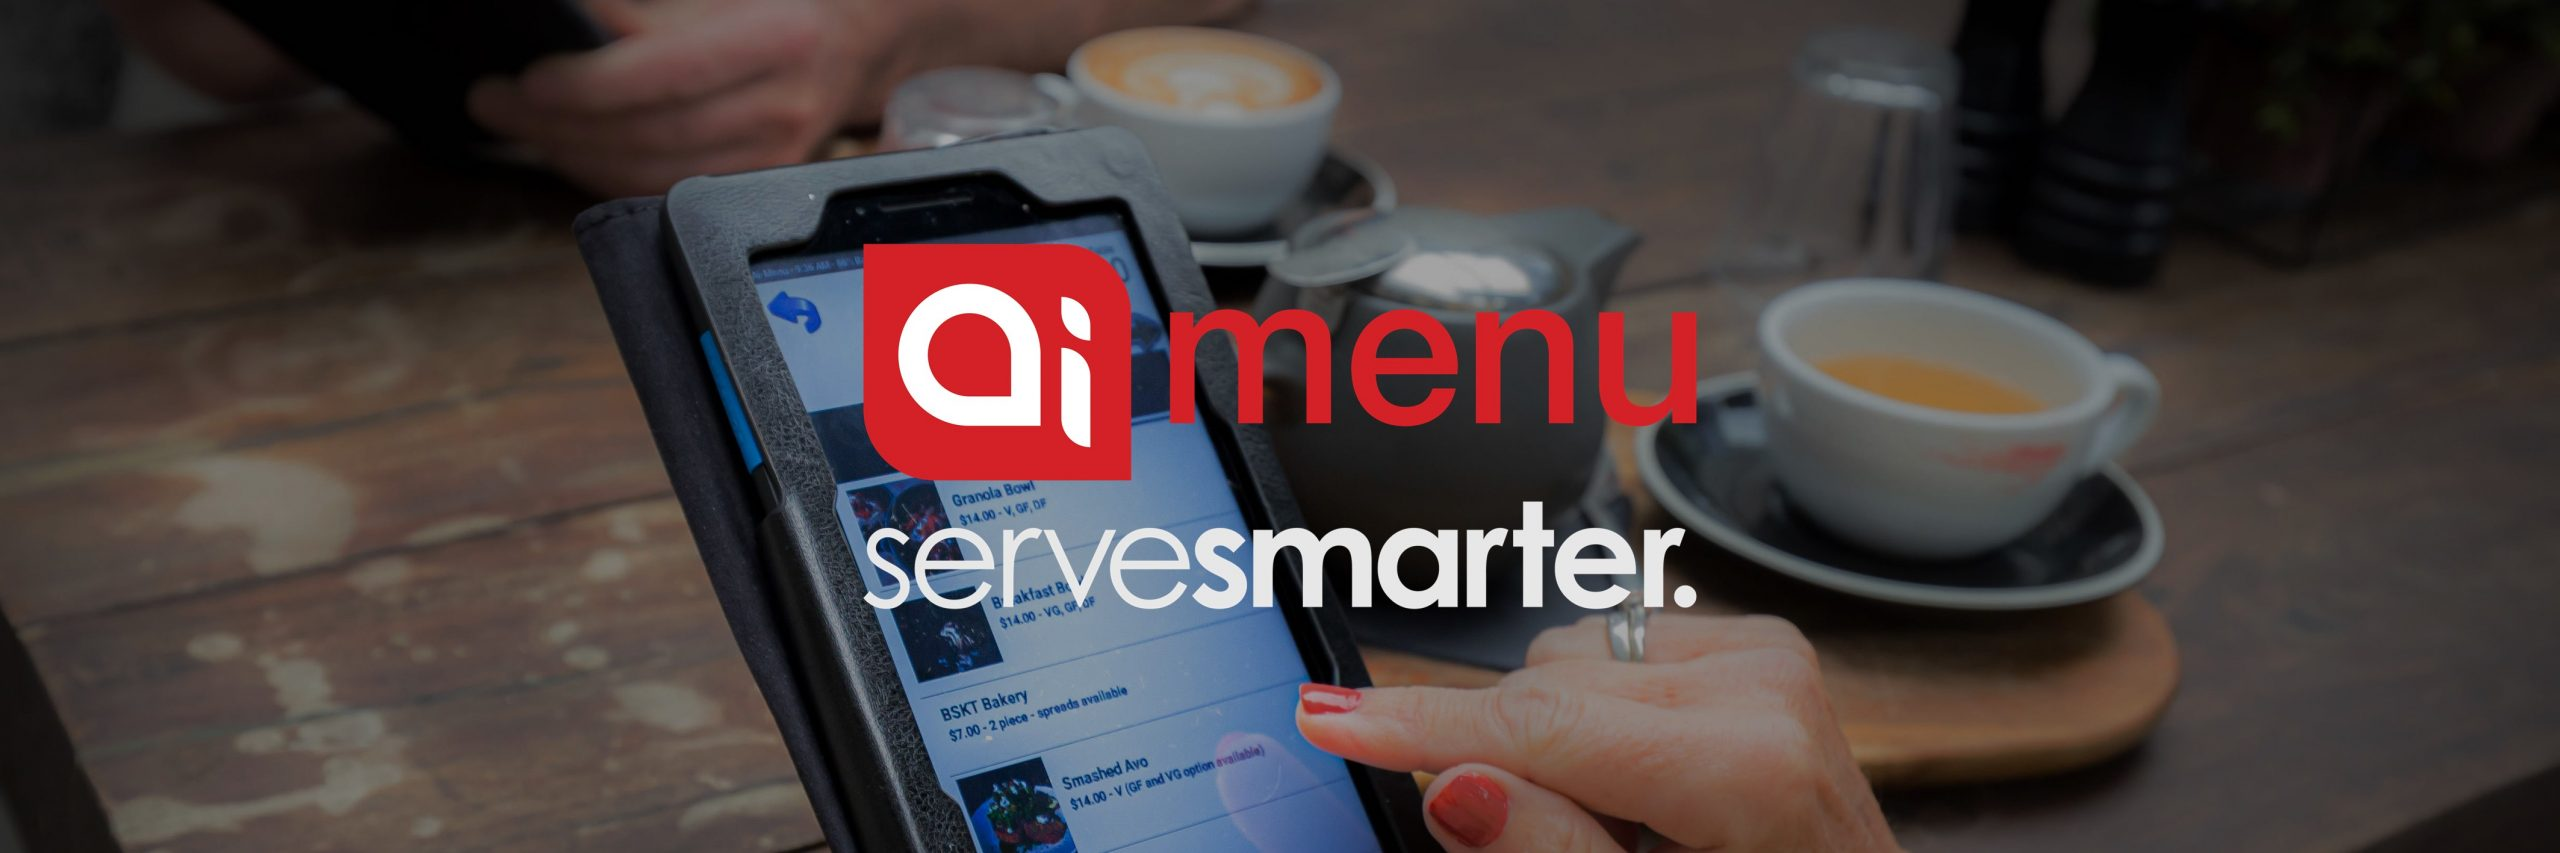 Ai Menu is a hospitality technology innovator in POS digital menus online sales kiosks for restaurants cafes bistros fast food